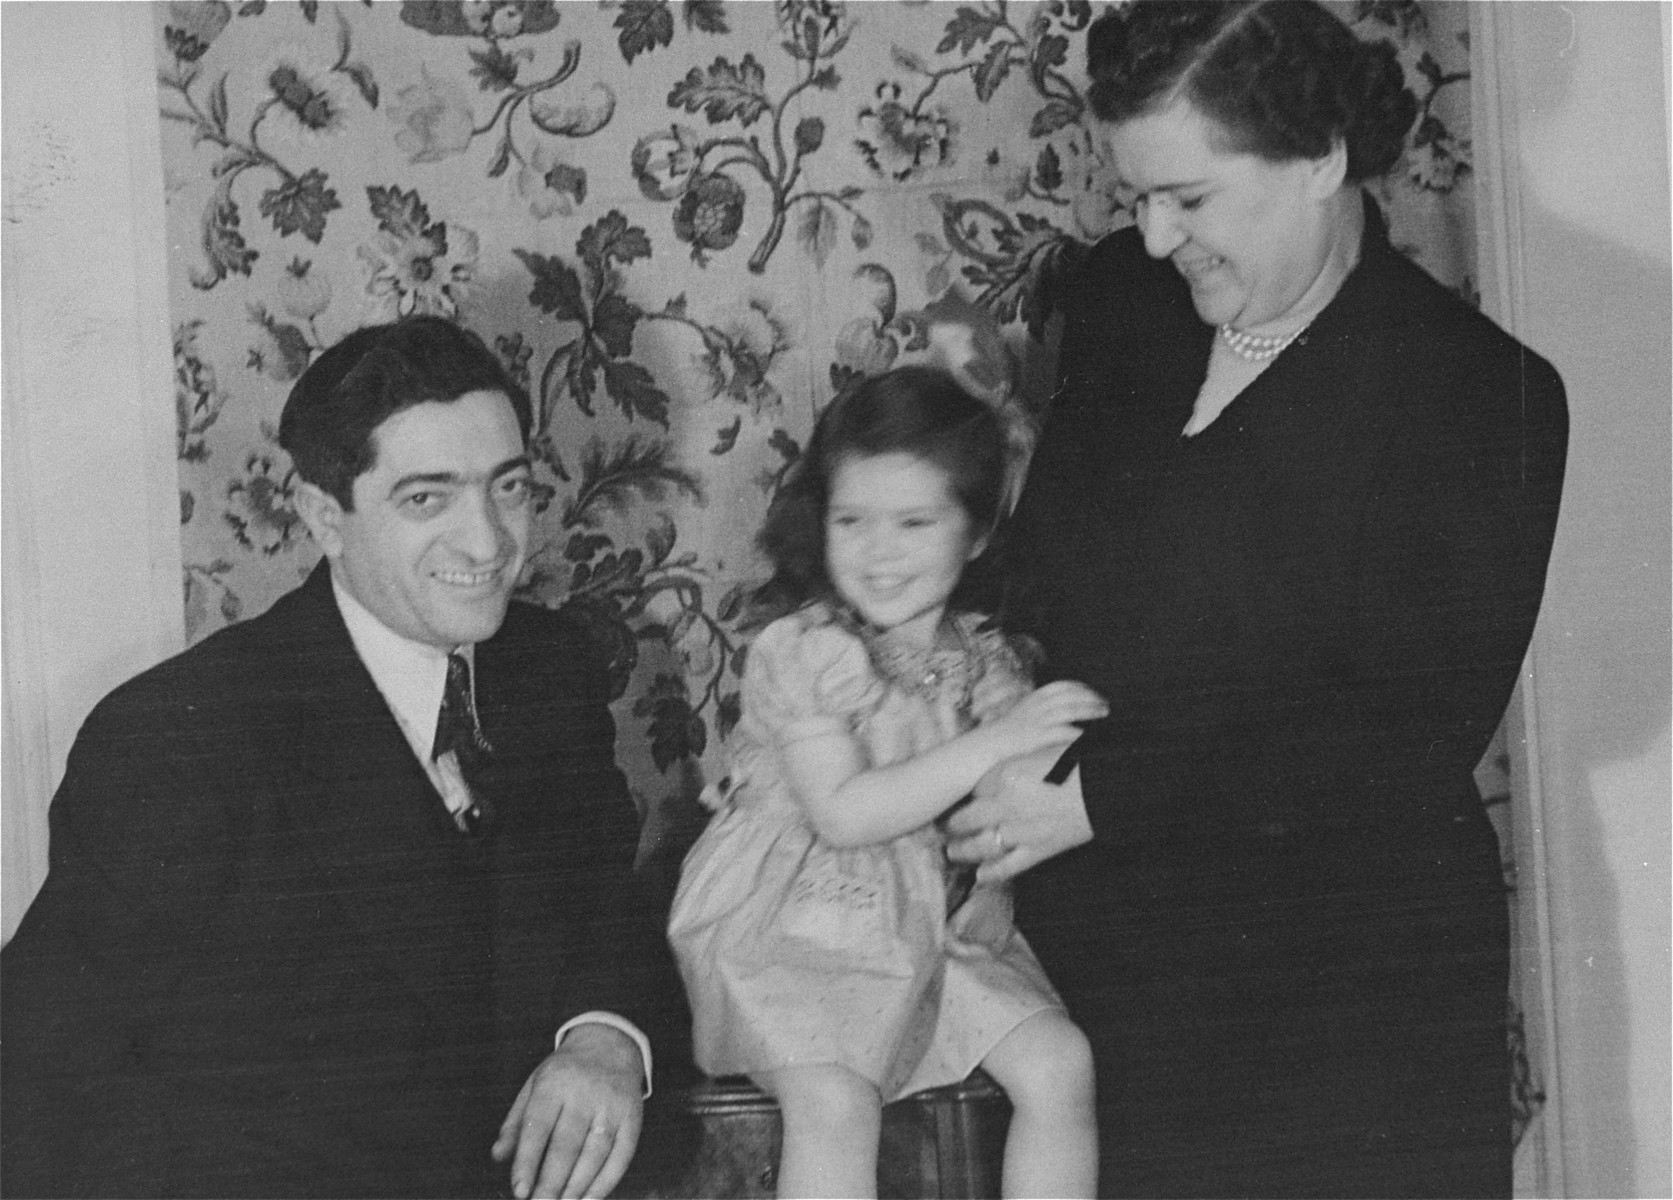 Portrait of the donor, Haviva, with her parents, Eliezer and Chaya Gar Kaplan, in their home in New York.